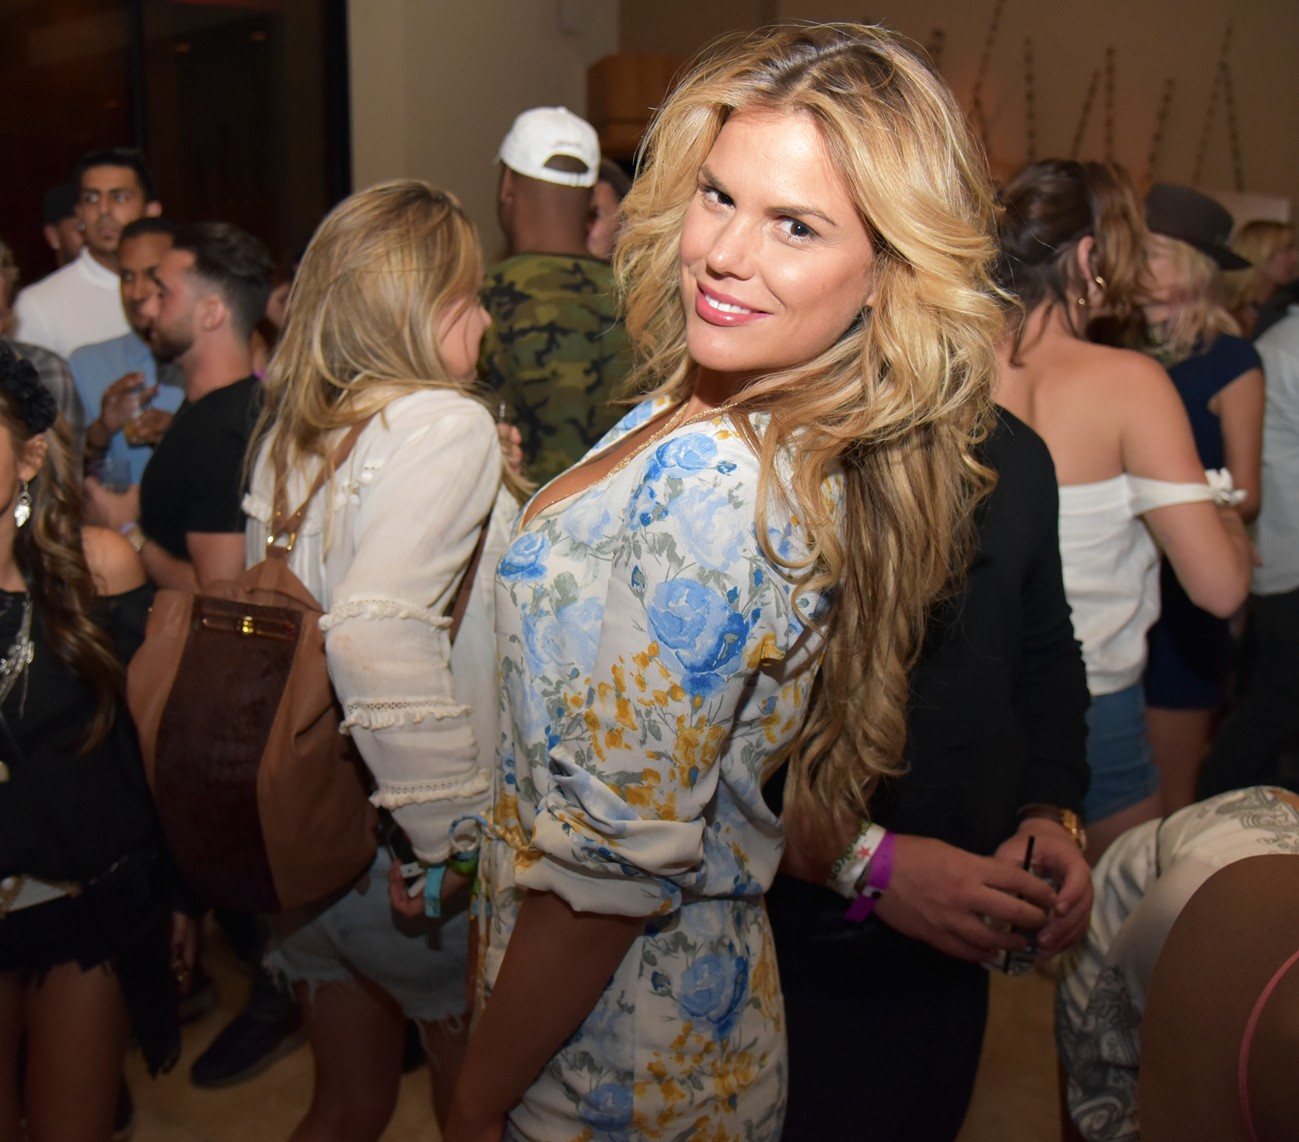 Bob Zangrillo party, Coachella, Rosalind Lipsett